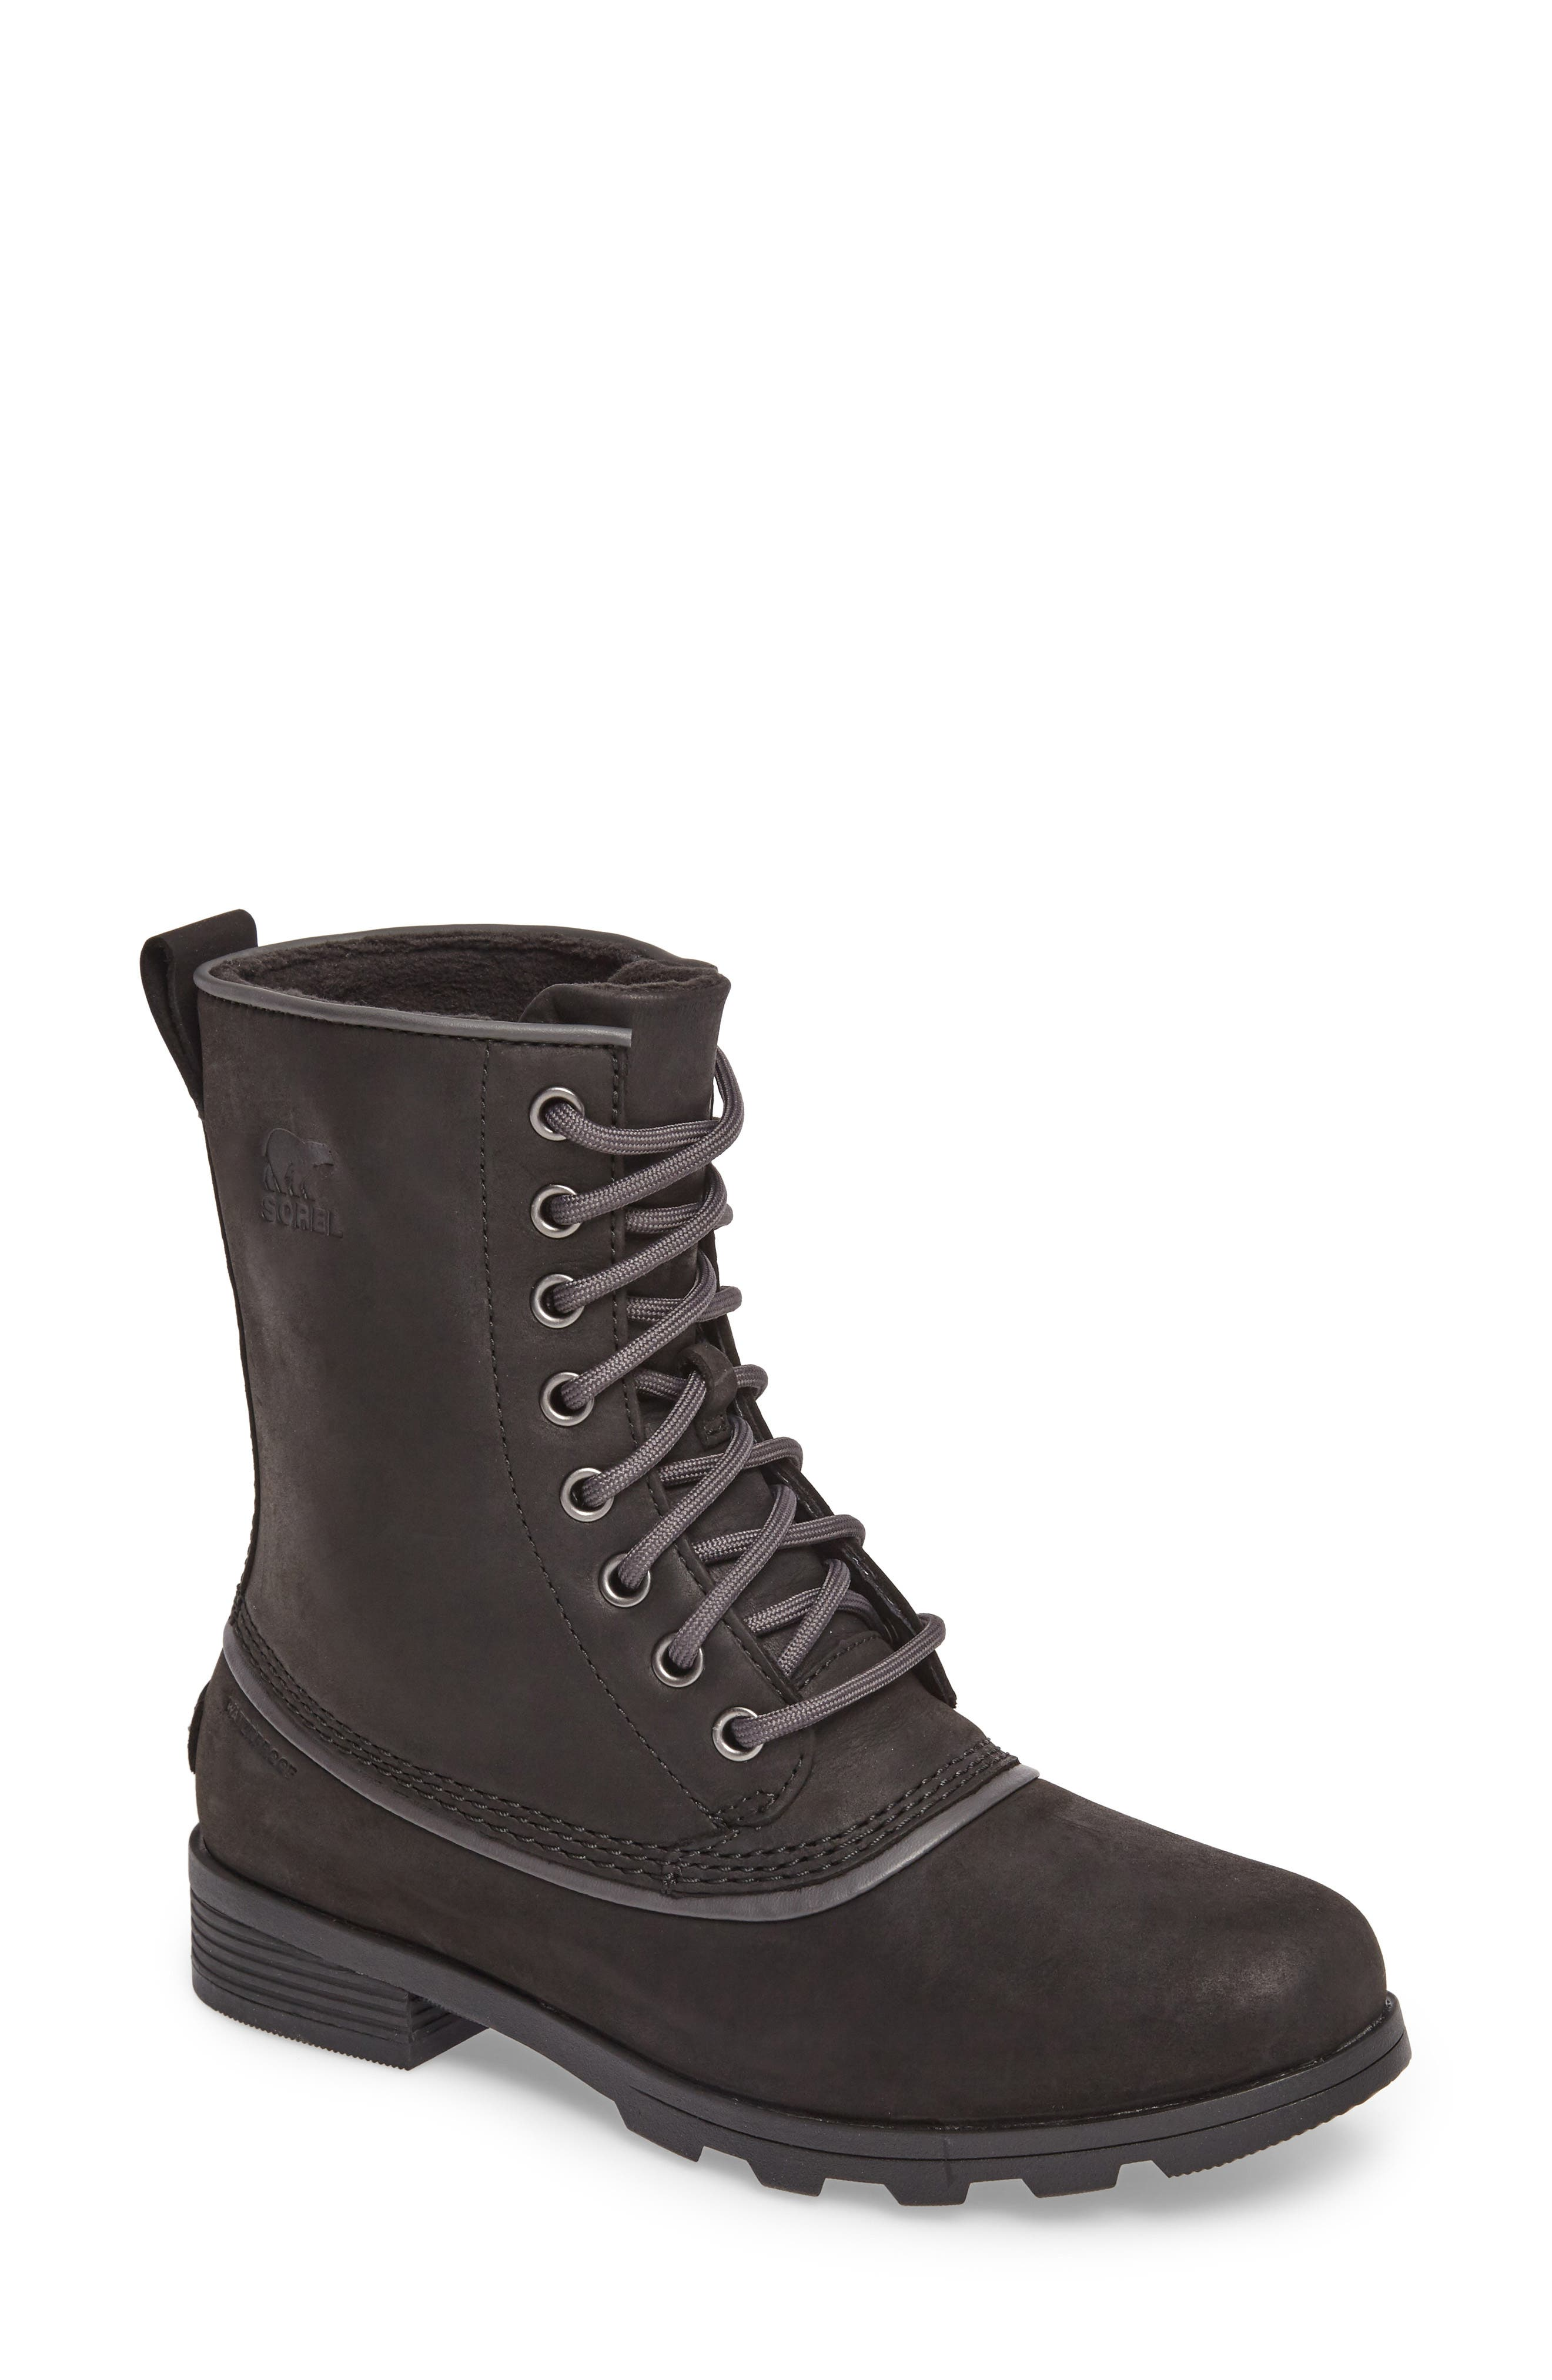 Sorel Emelie 1964 Waterproof Bootie